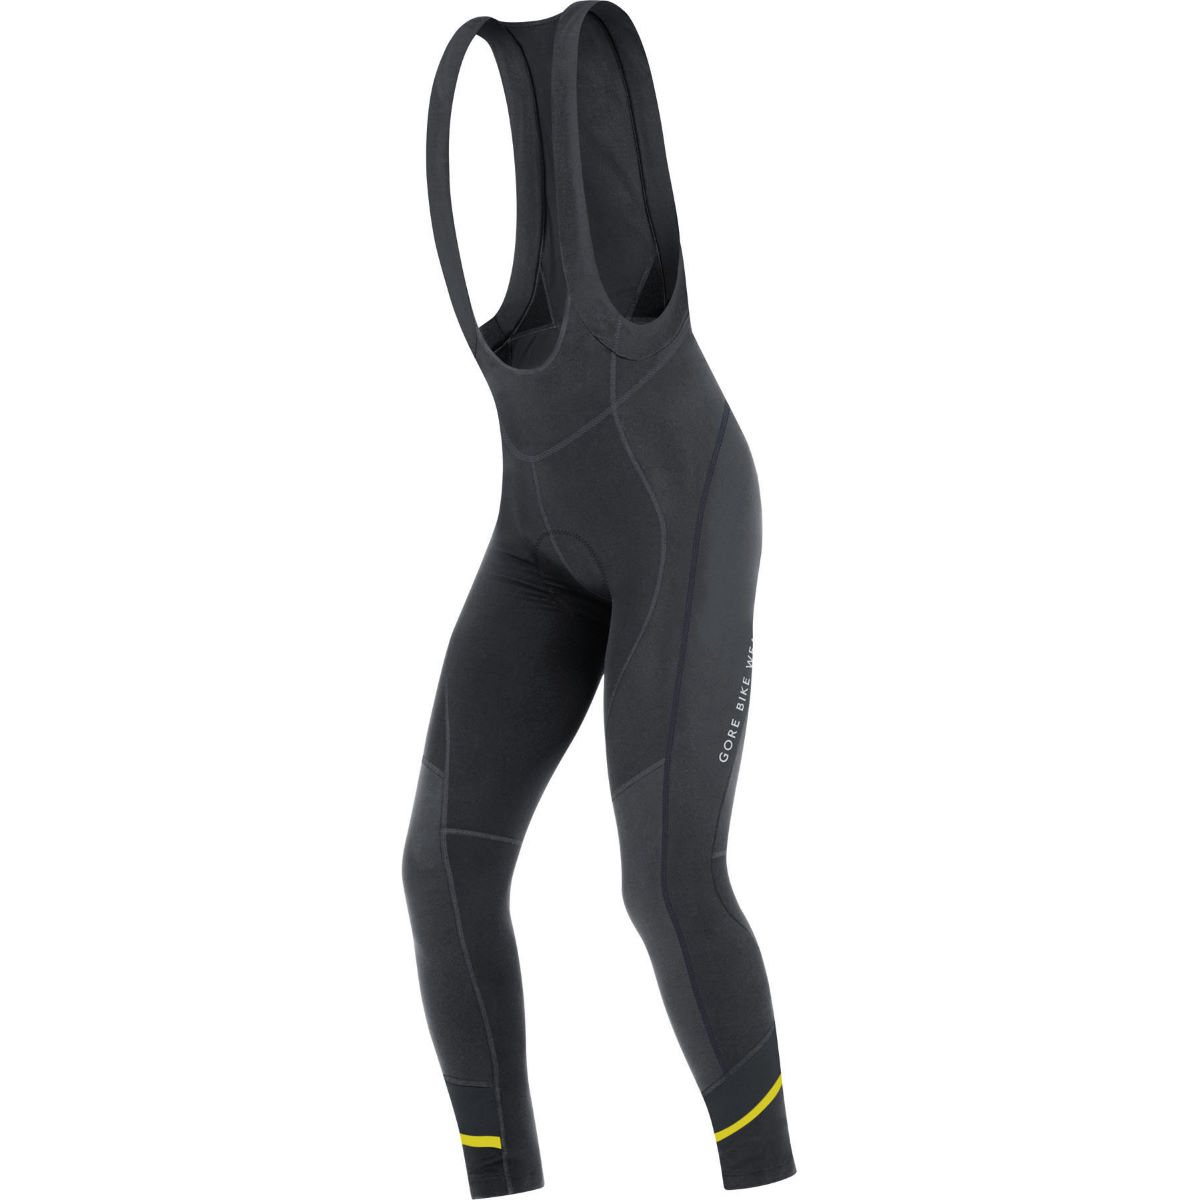 Culote con tirantes Gore Bike Wear Power 3.0 Thermo+ - Culotes de ciclismo